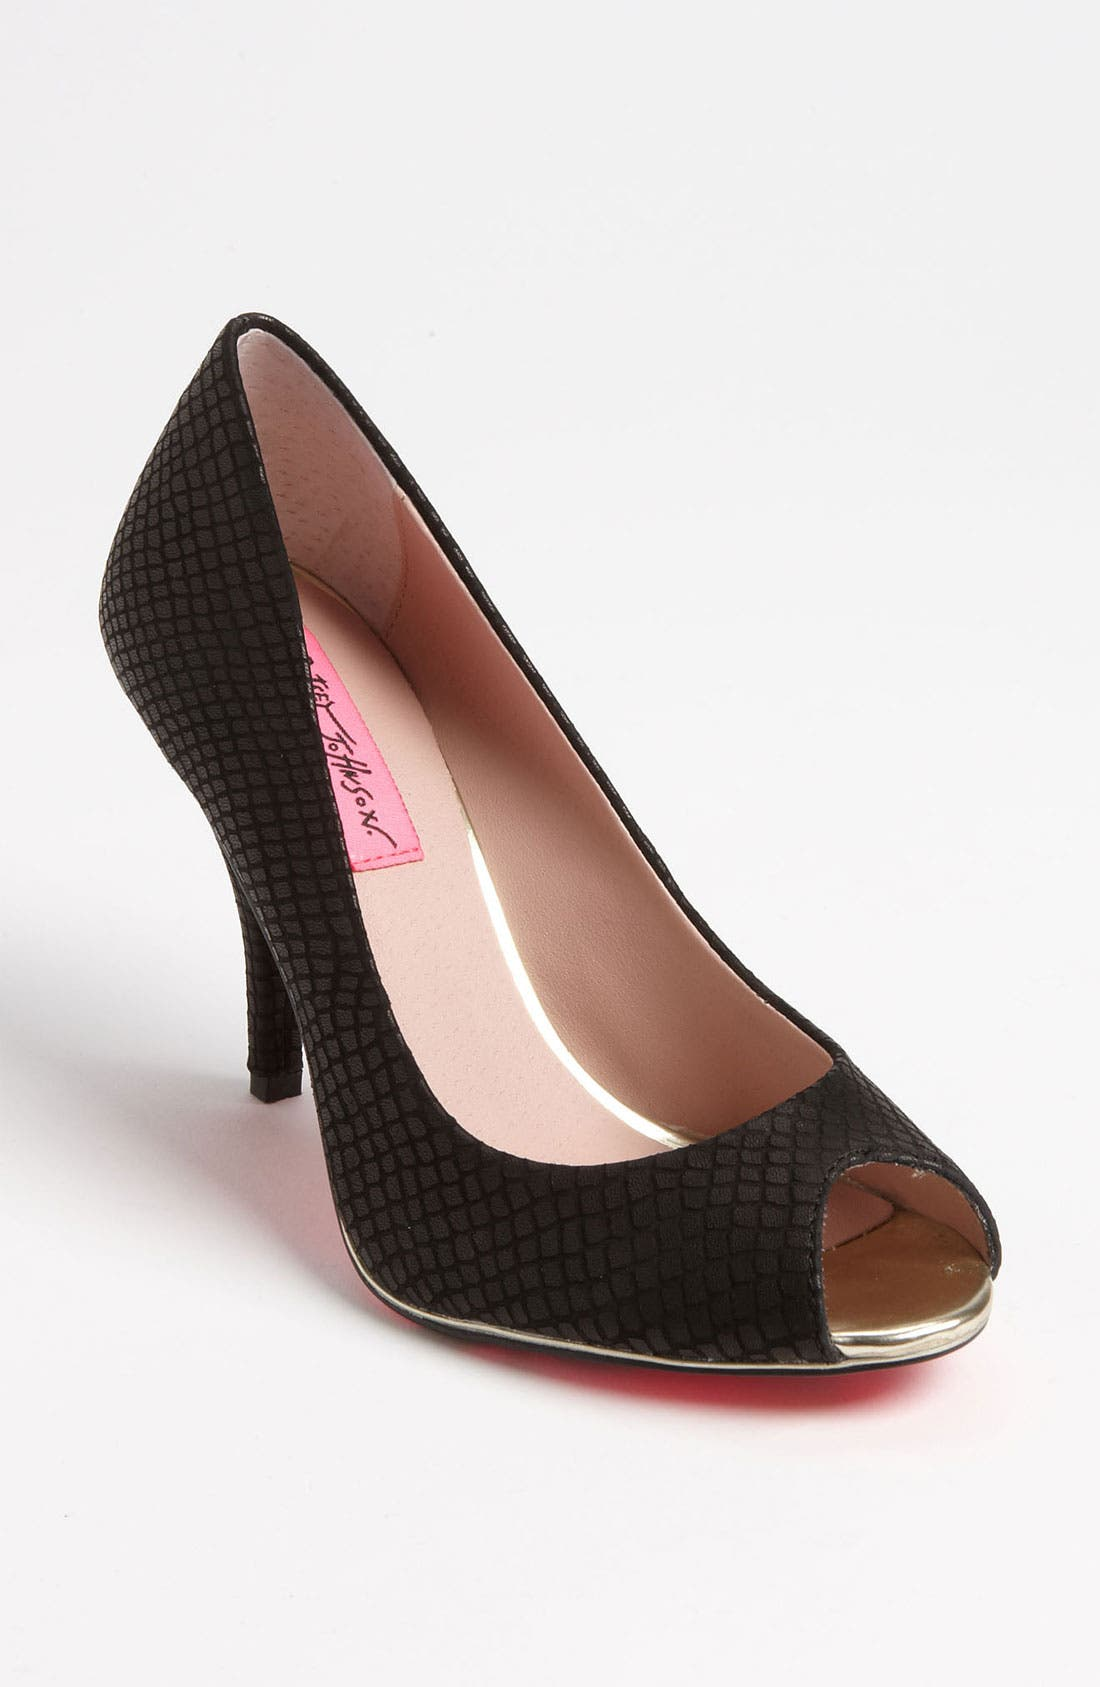 Alternate Image 1 Selected - Betsey Johnson 'Ponzay' Pump